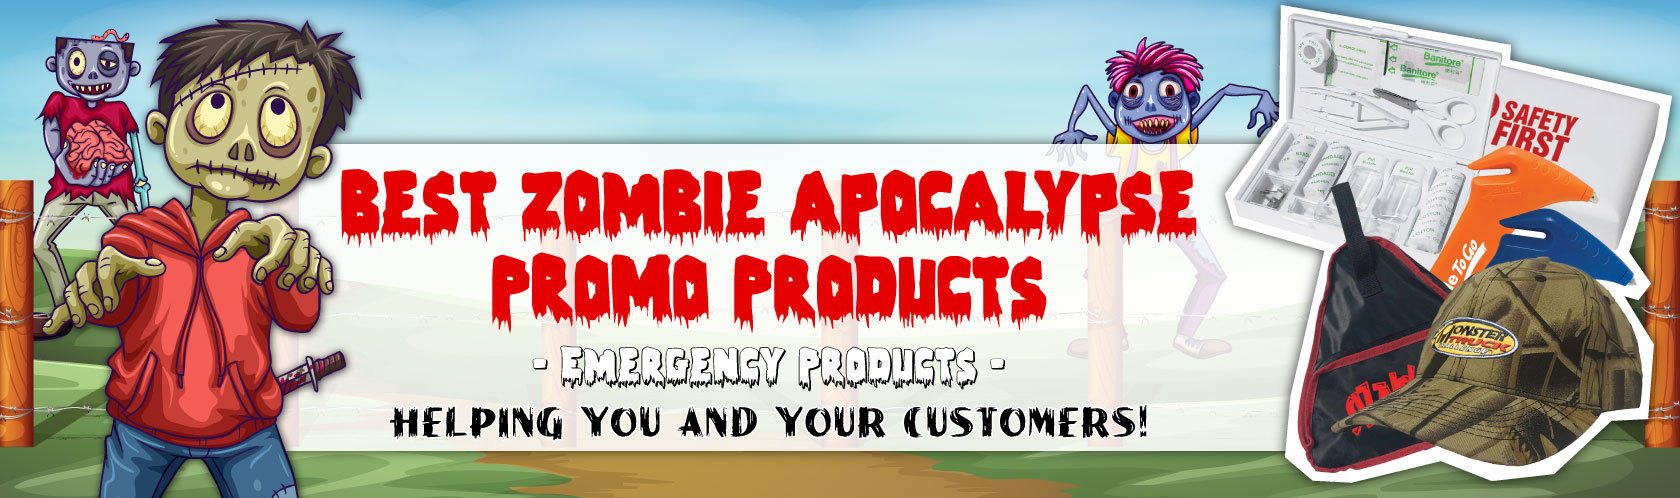 Best Zombie Apocalypse Products (Emergency Products)